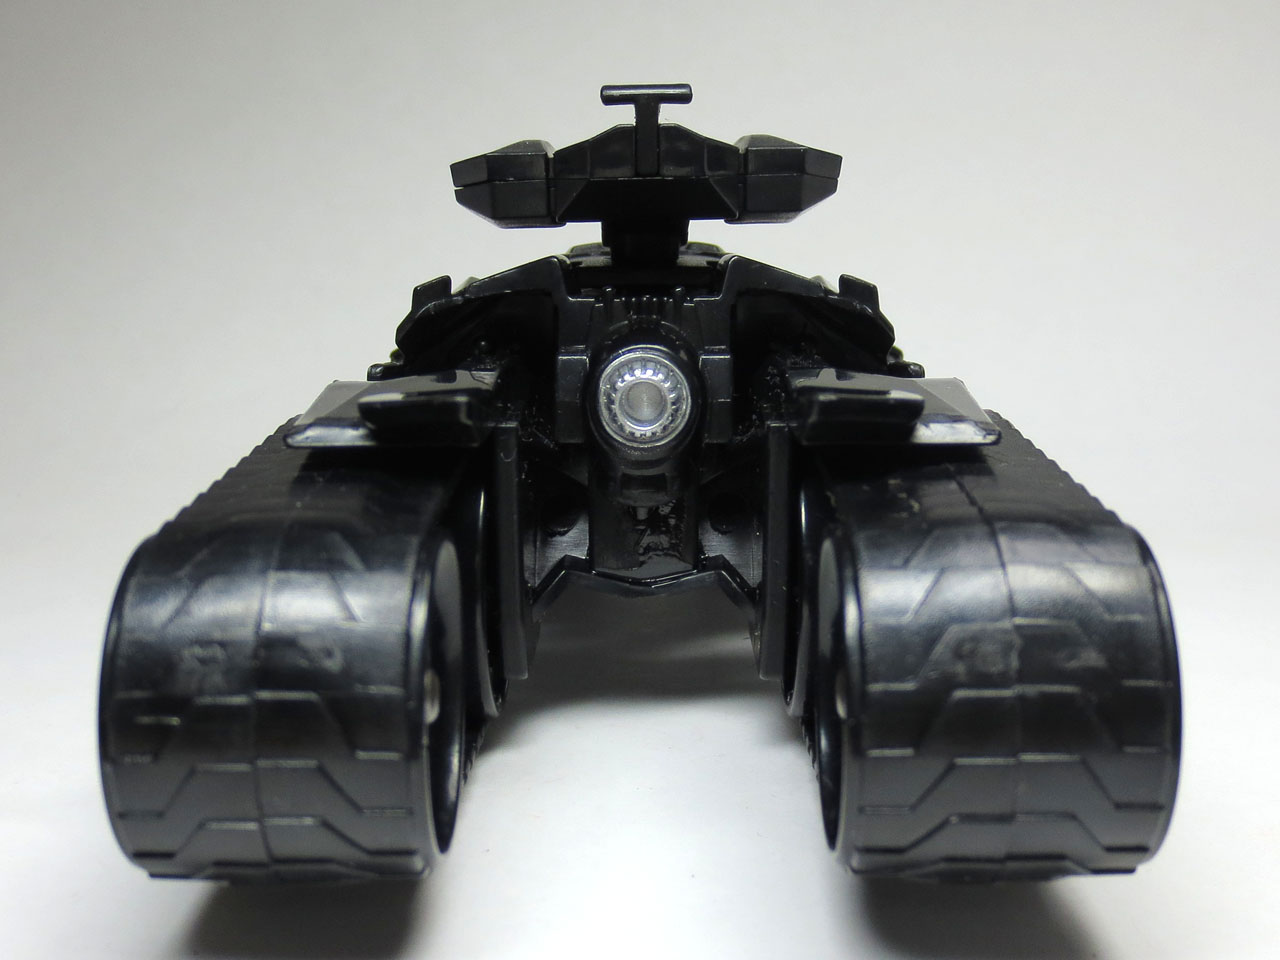 HW_custom_motors_batmobile_4th_27.jpg